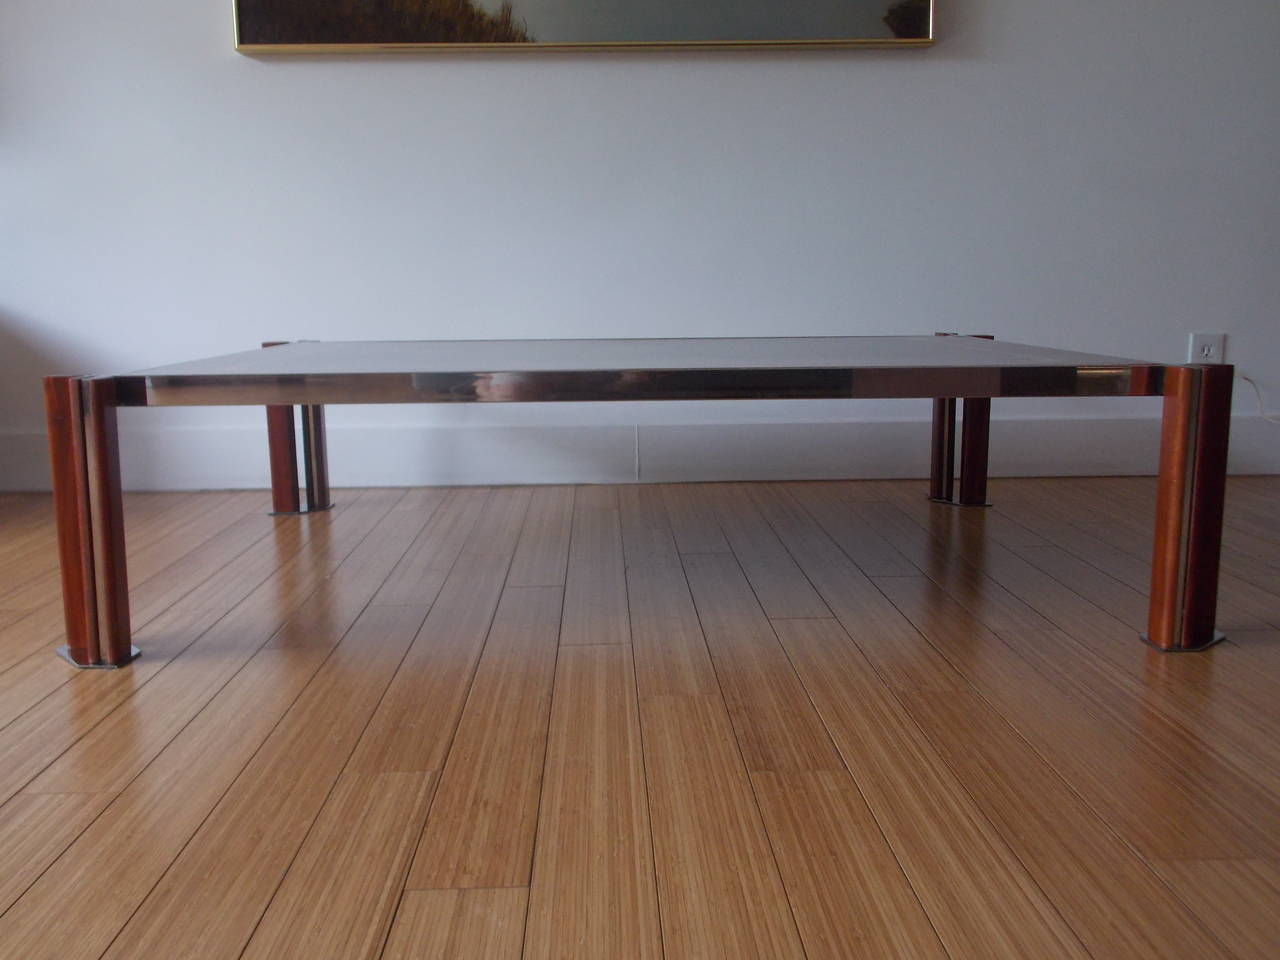 Chic italian design coffee table attributed to saporitti - Coffee table italian design ...